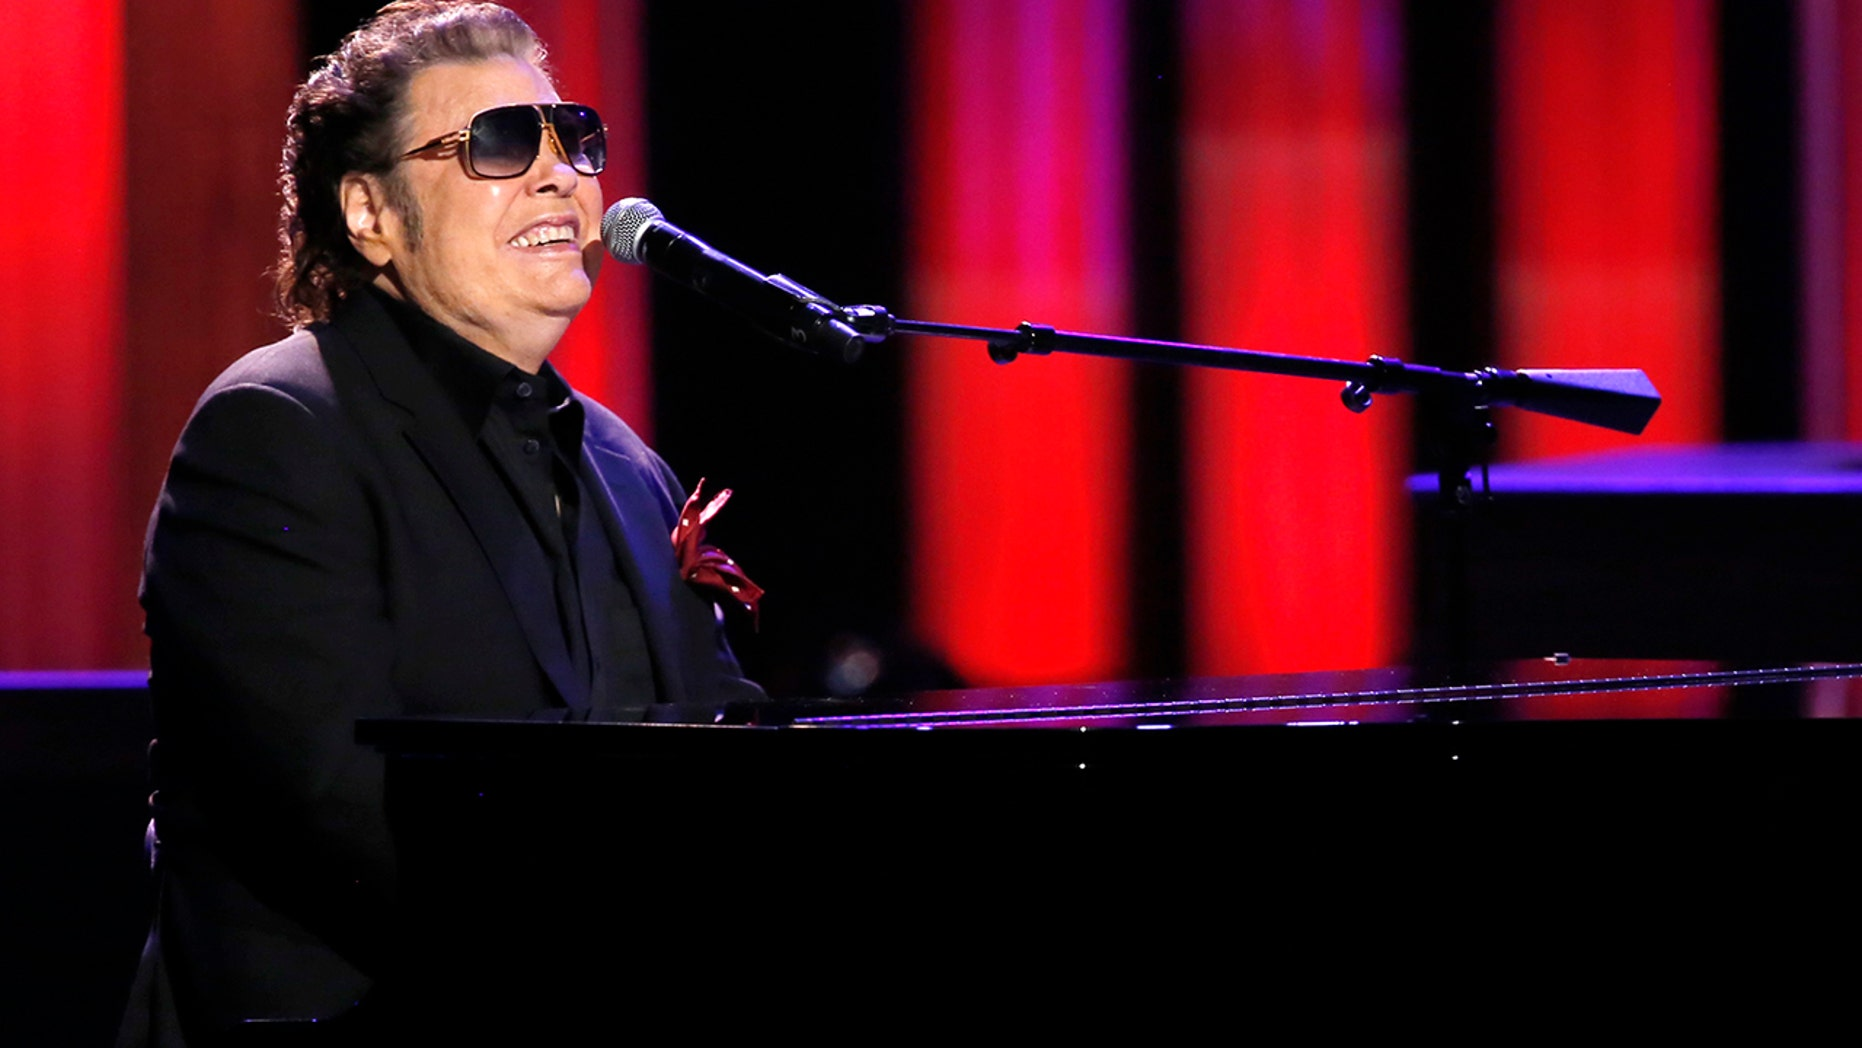 Singer Ronnie Milsap performs onstage at the Grand Ole Opry on Oct. 8, 2018, in Nashville, Tenn. (Getty Images)